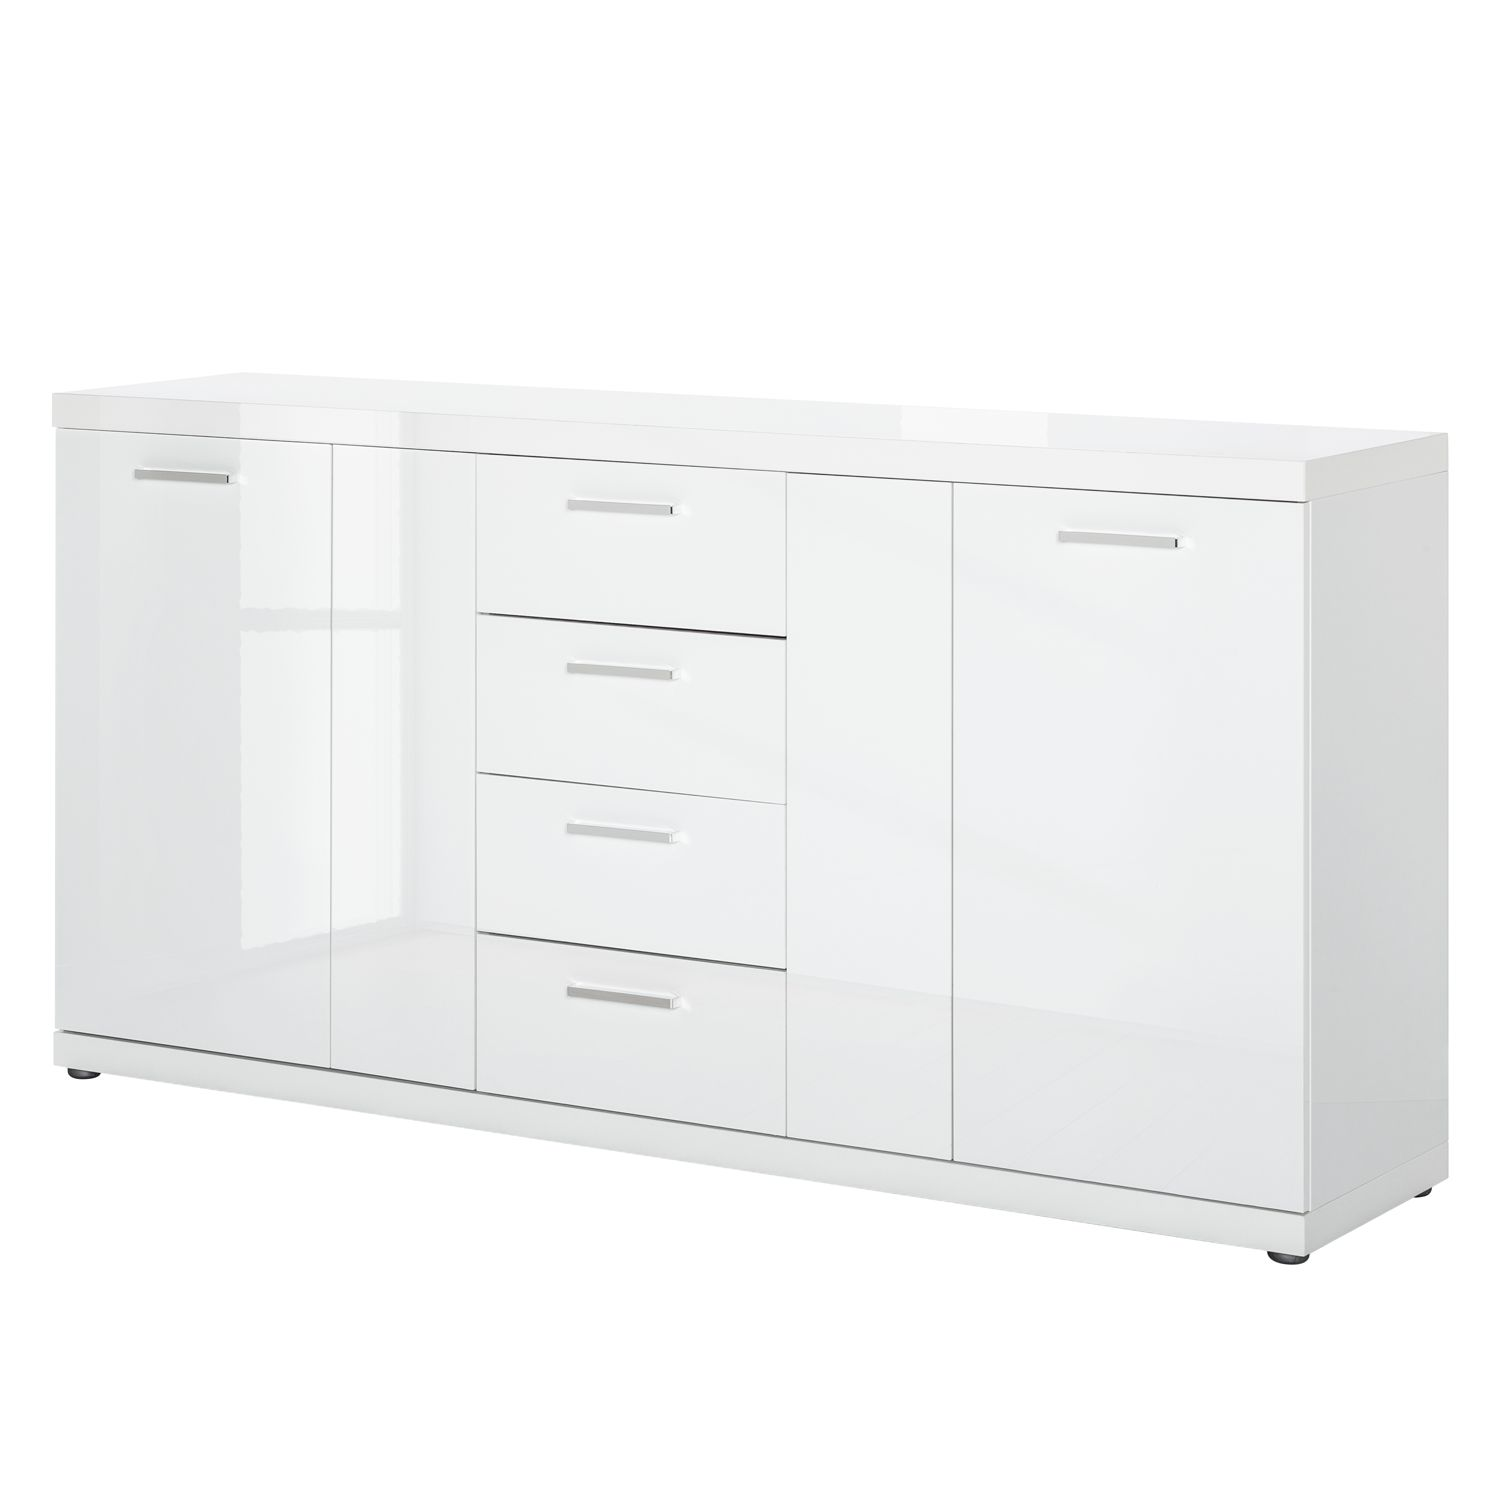 sideboard delray hochglanz wei loftscape g nstig schnell einkaufen. Black Bedroom Furniture Sets. Home Design Ideas